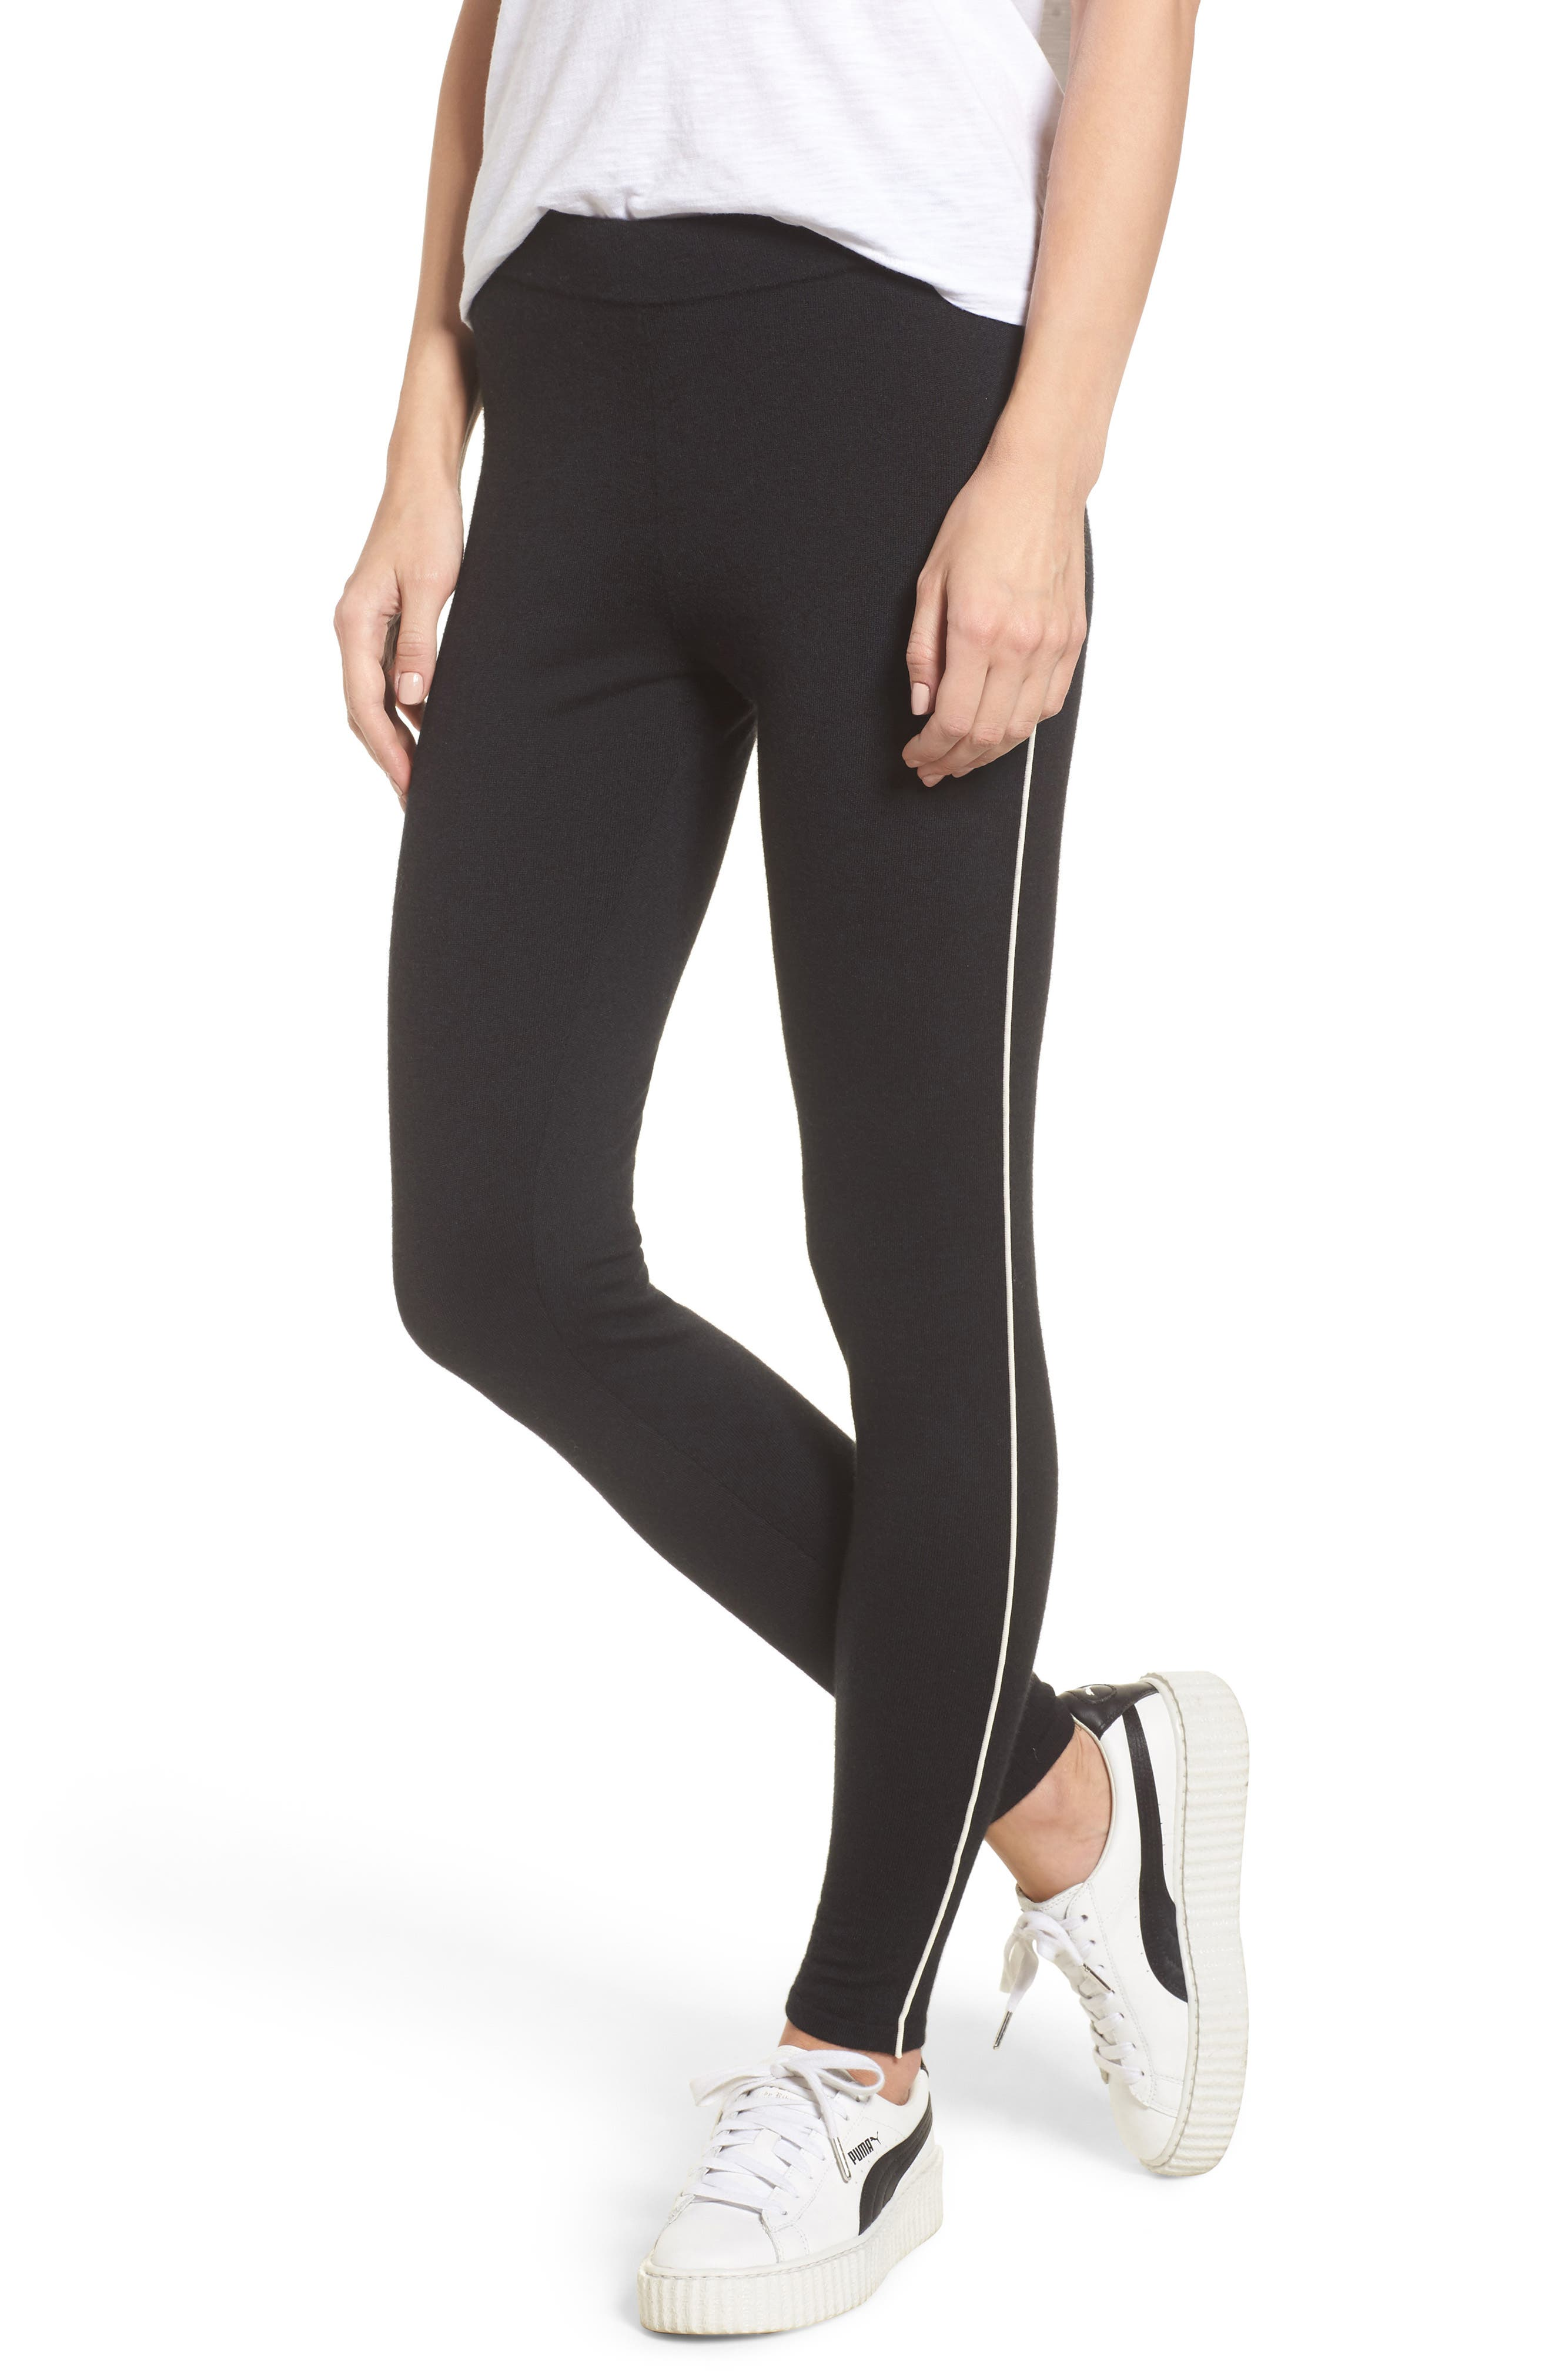 Alternate Image 1 Selected - James Perse Stretch Cashmere Leggings